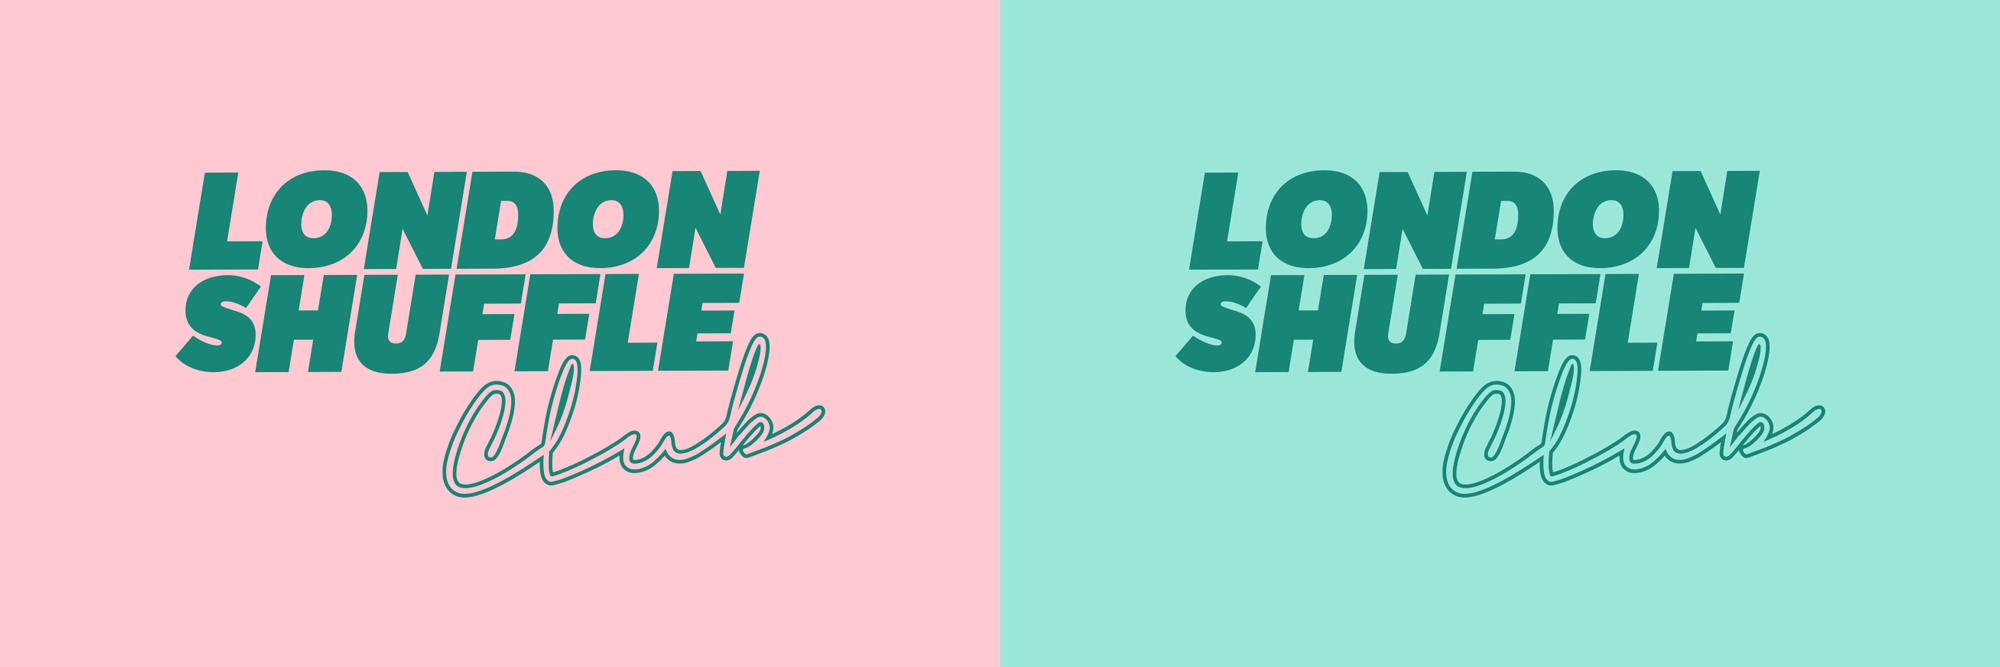 New Logo and Identity for London Shuffle Club by A New Kind of Kick